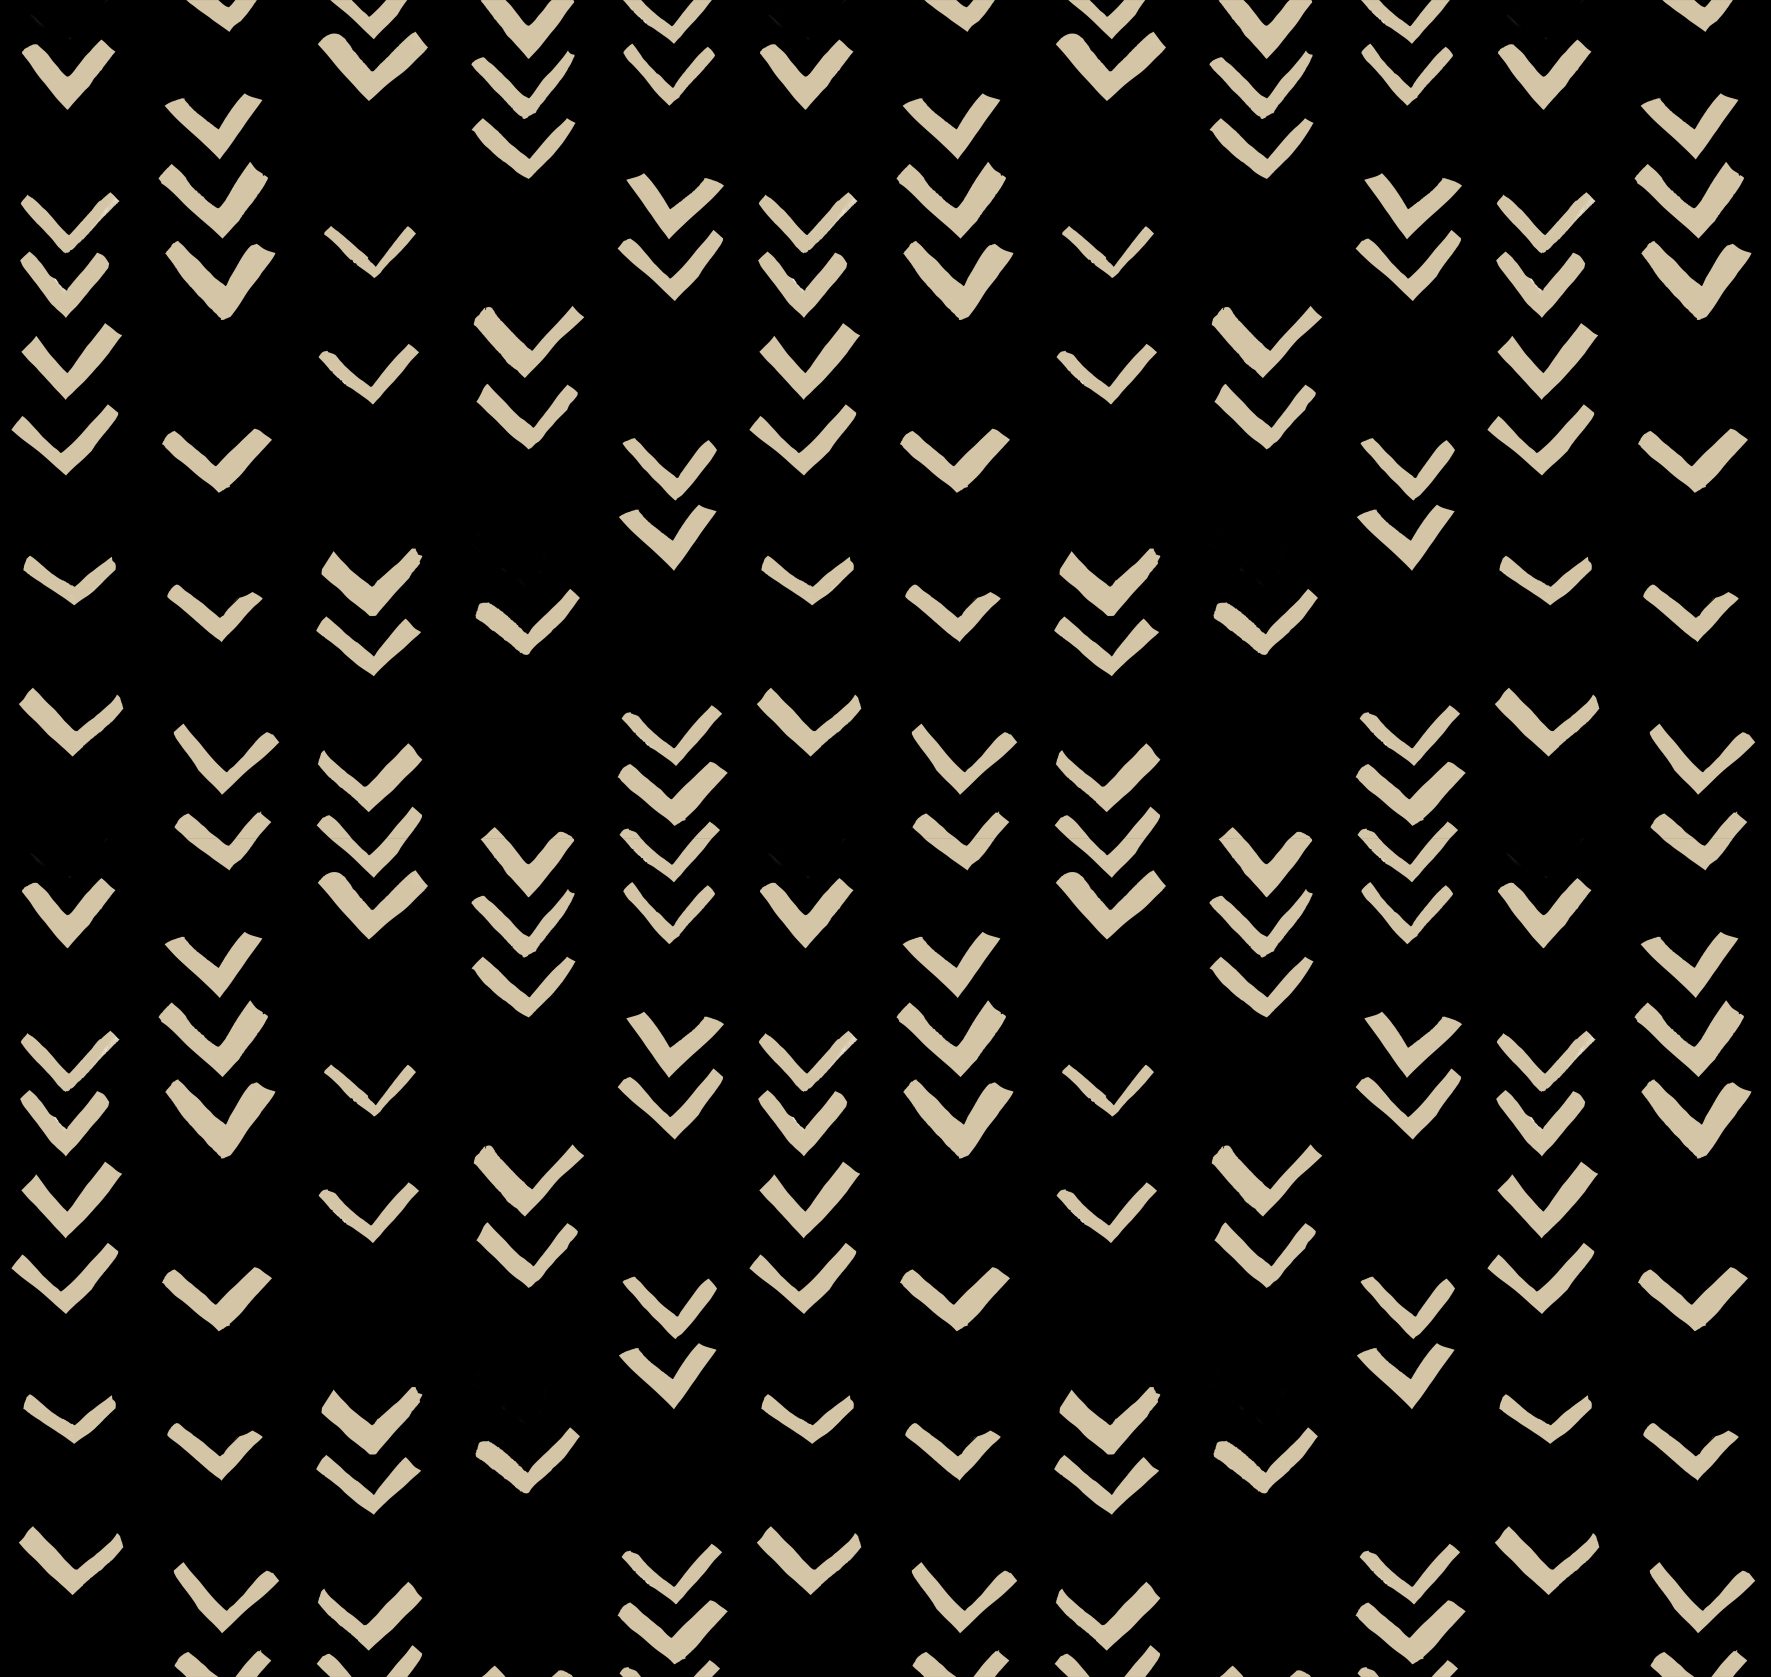 melissa boardman vs pattern abstract black.png